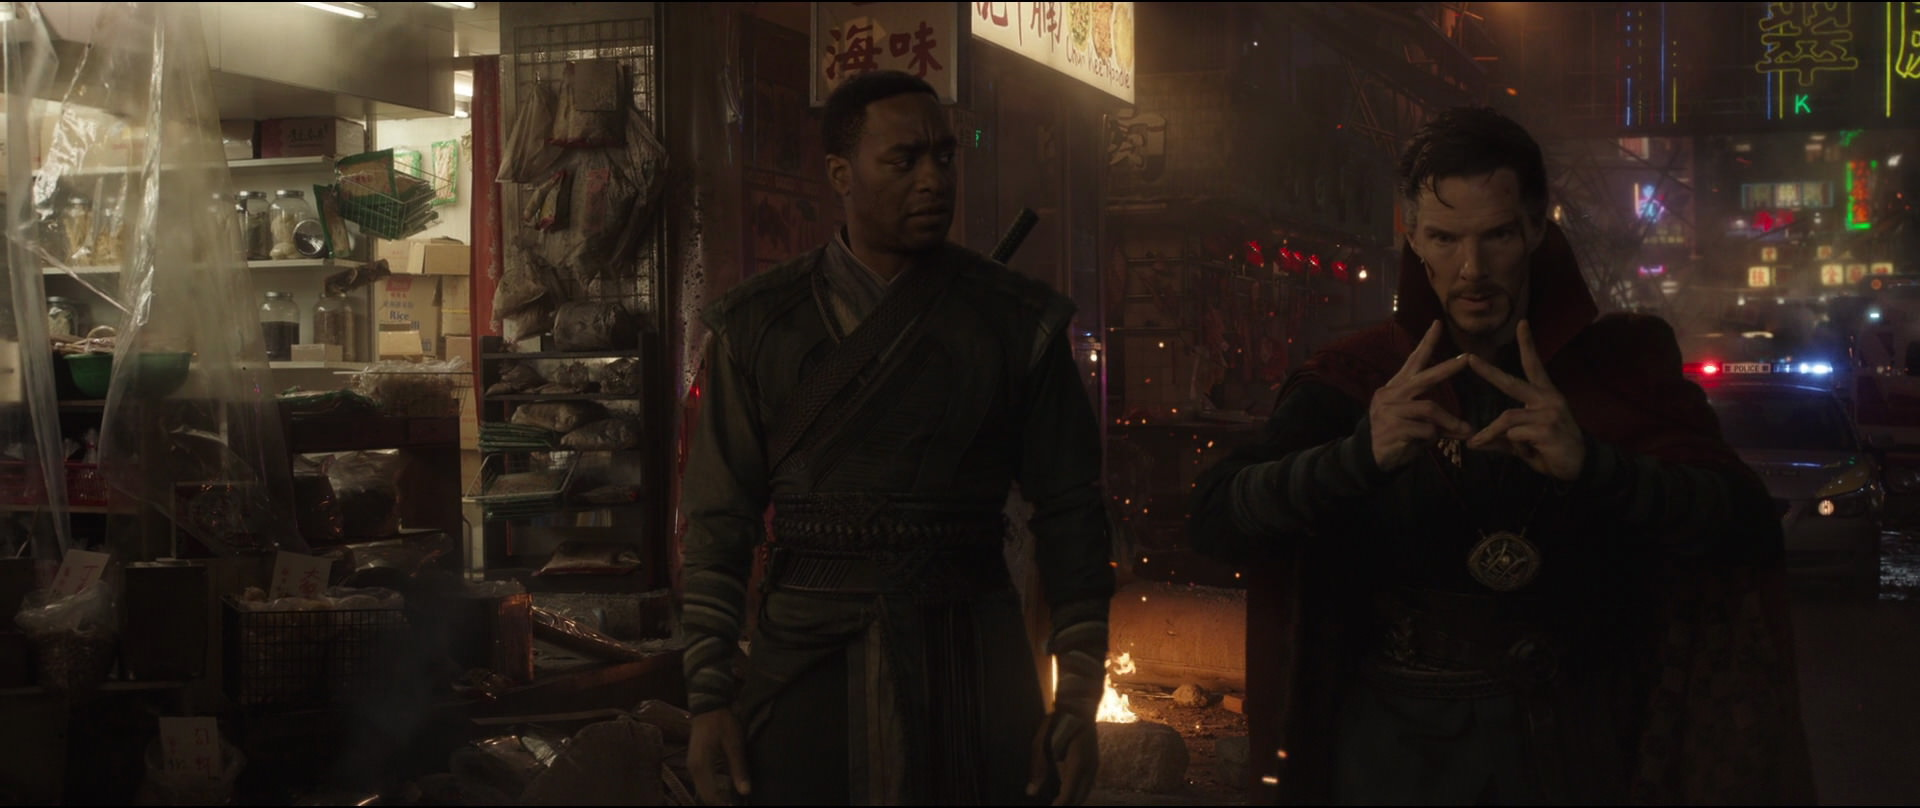 http://caps.pictures/201/6-doctorstrange/full/dr-strange-movie-screencaps.com-10888.jpg